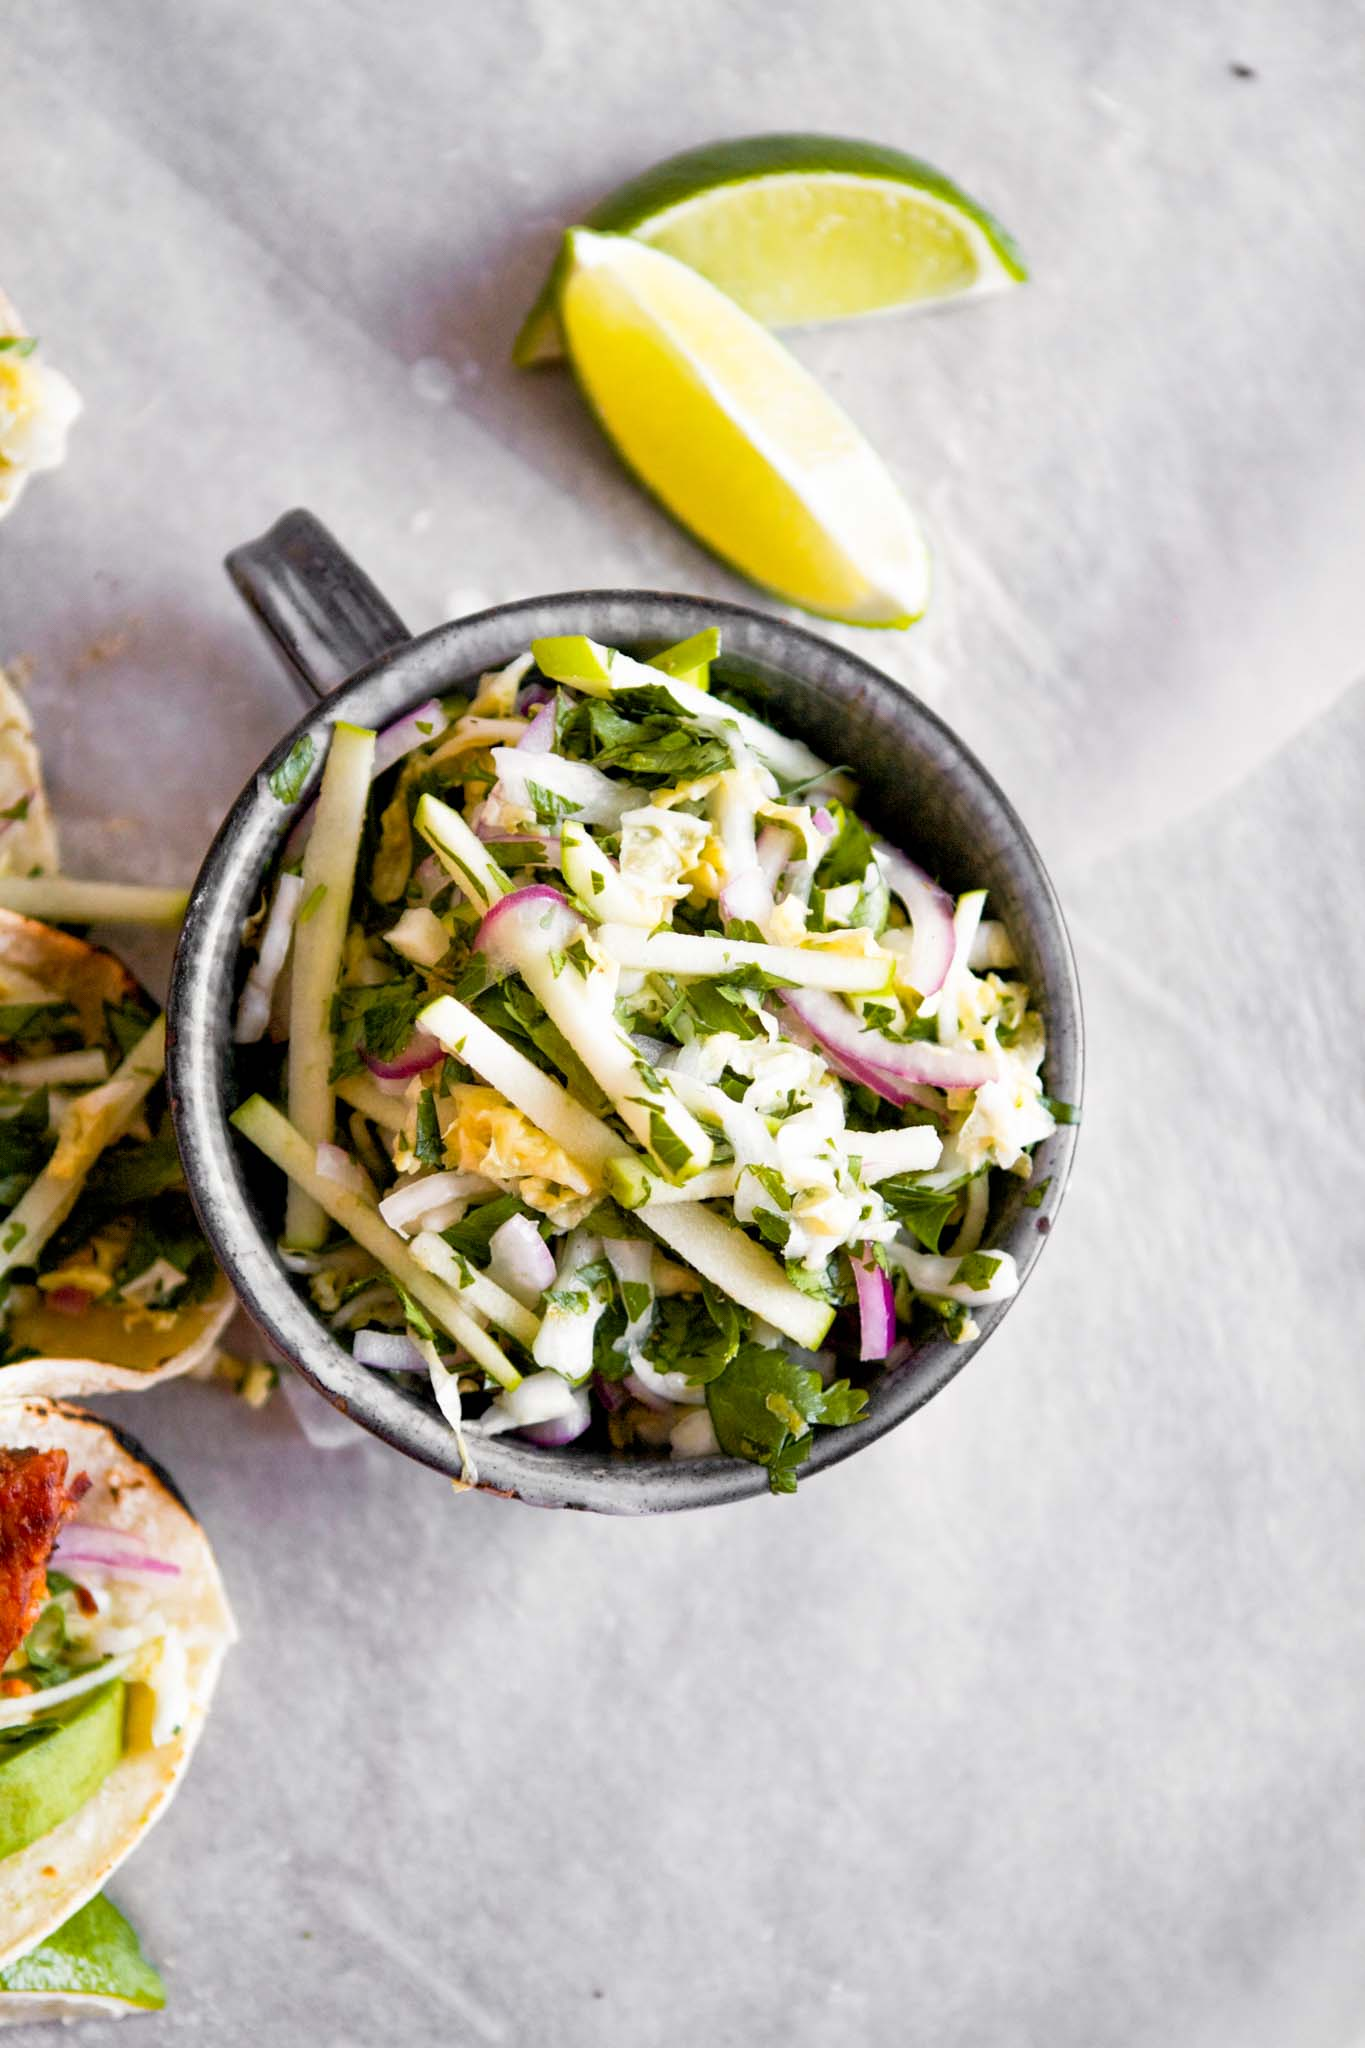 Overhead photo of green apple slaw in a small metal cup